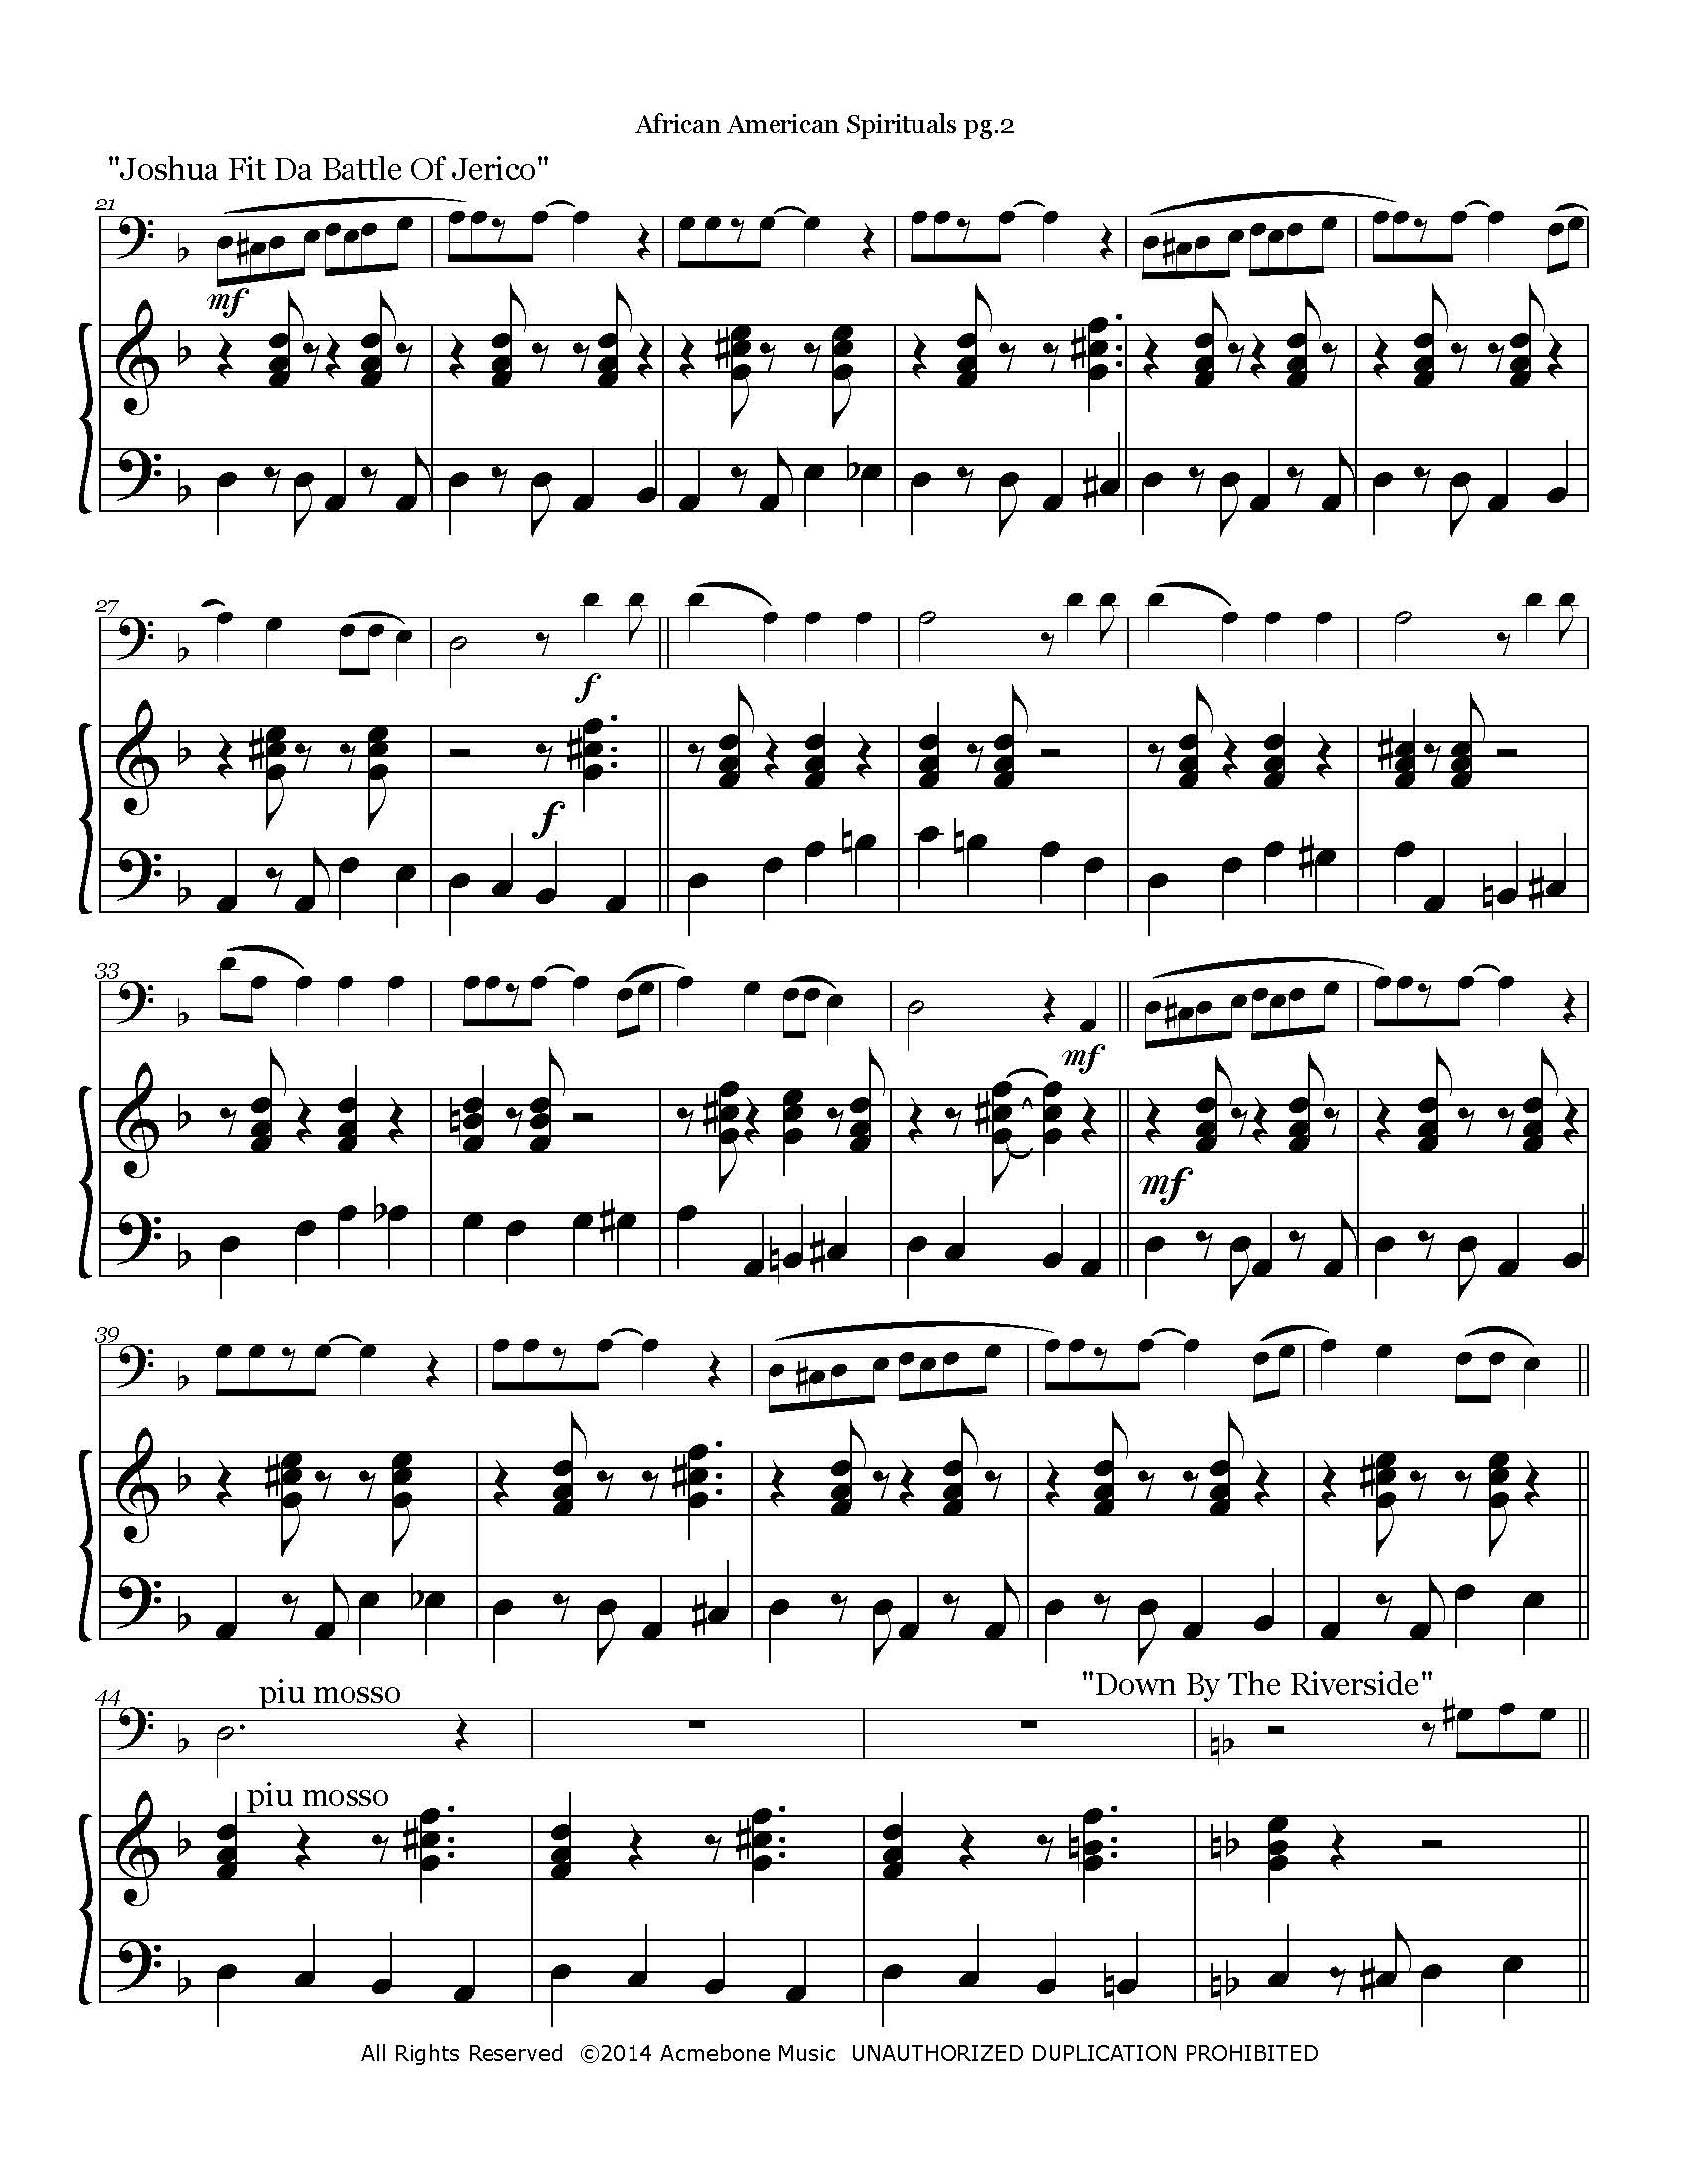 Three African American Spirituals_acc_Page_2.jpg